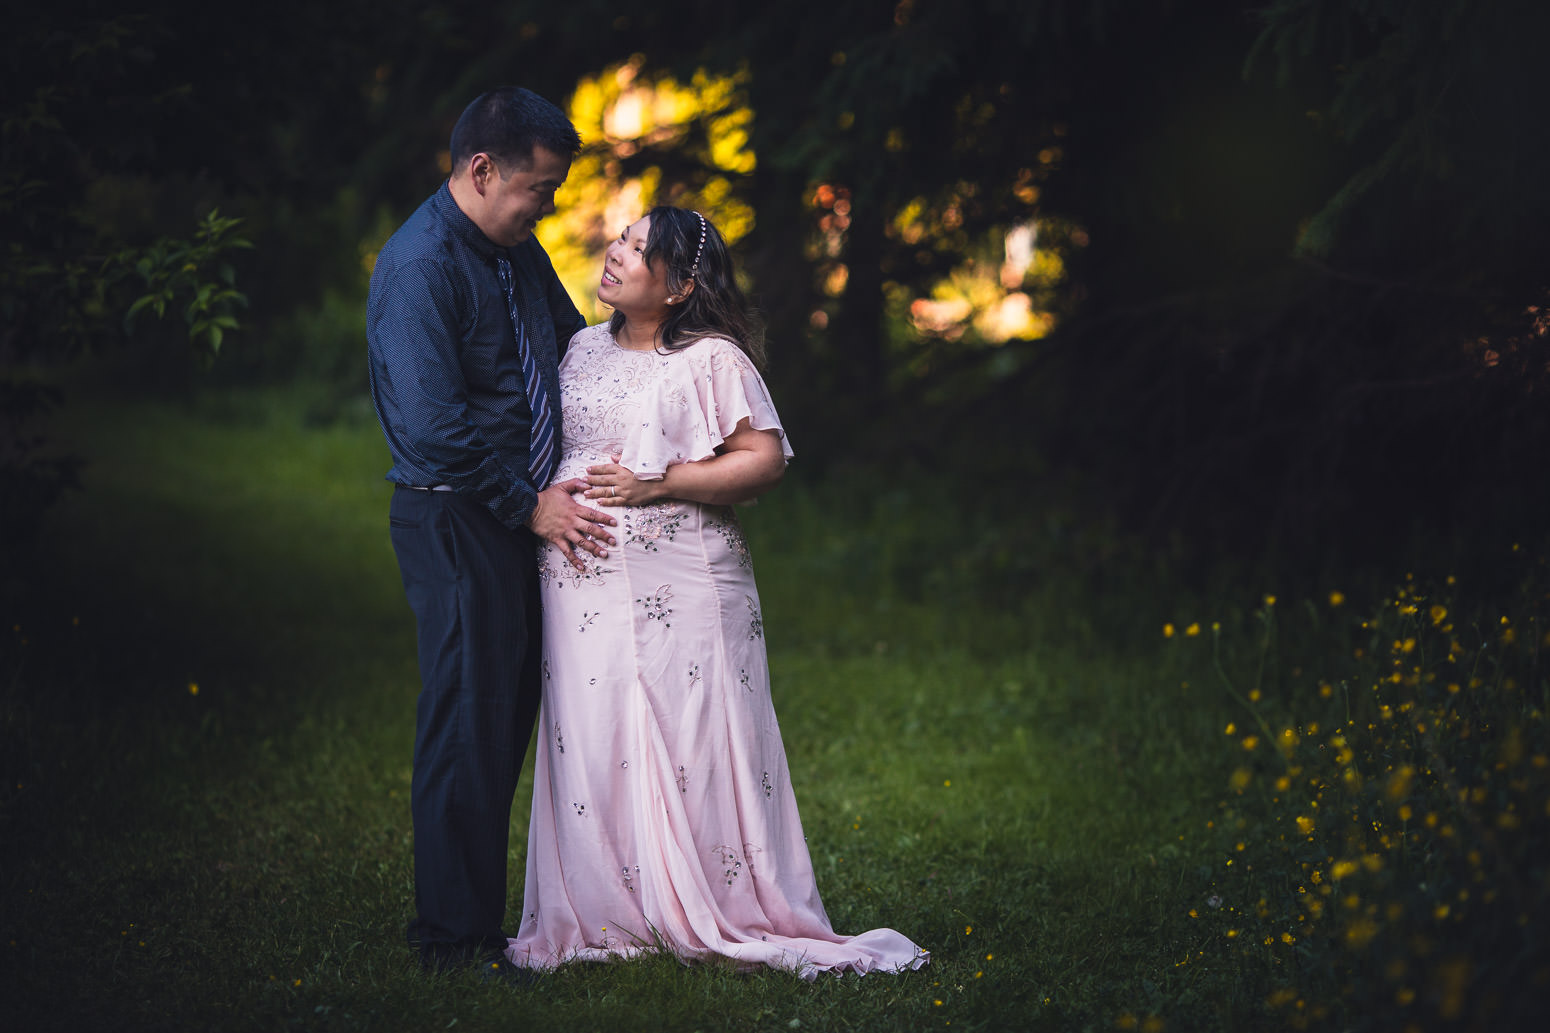 Maternity photo of husband and wife in grassy wooded setting